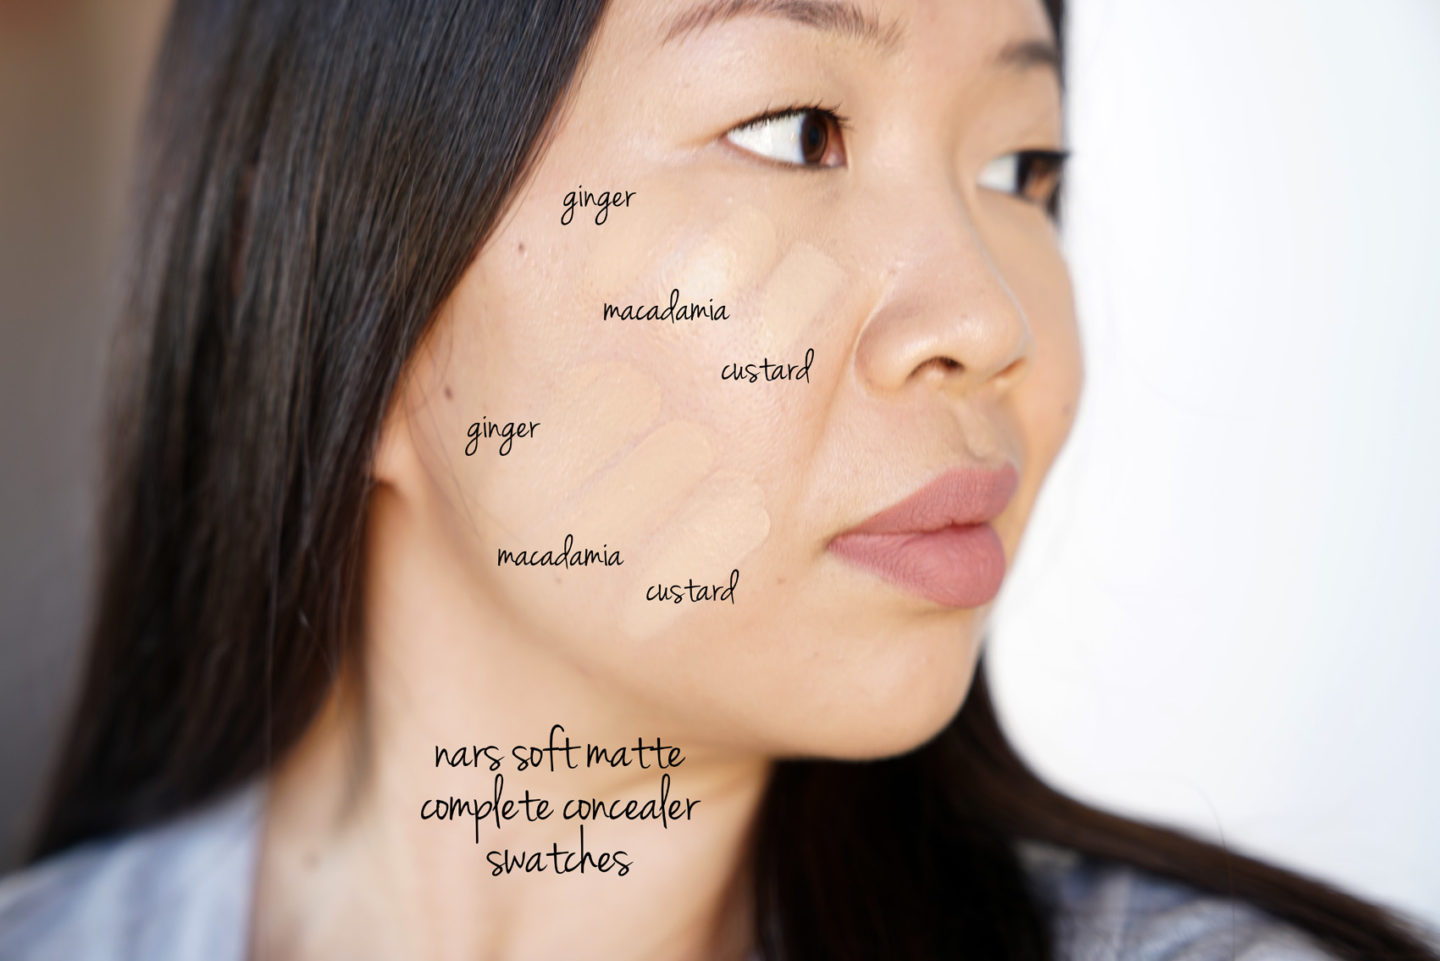 NARS Soft Matte Complete Concealer   The Beauty Look Book